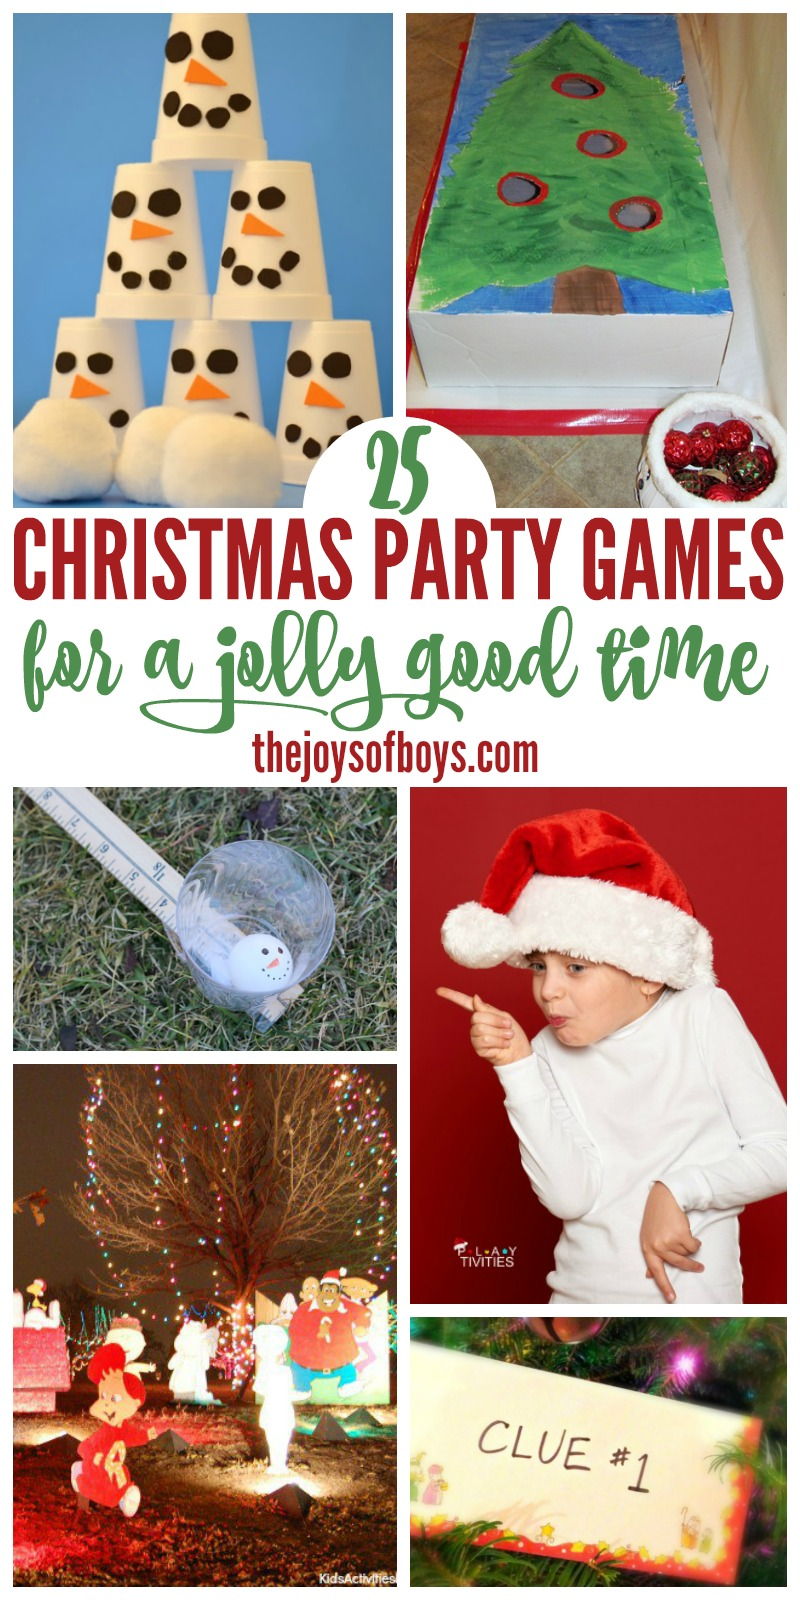 Christmas Party Games Kids Will Love